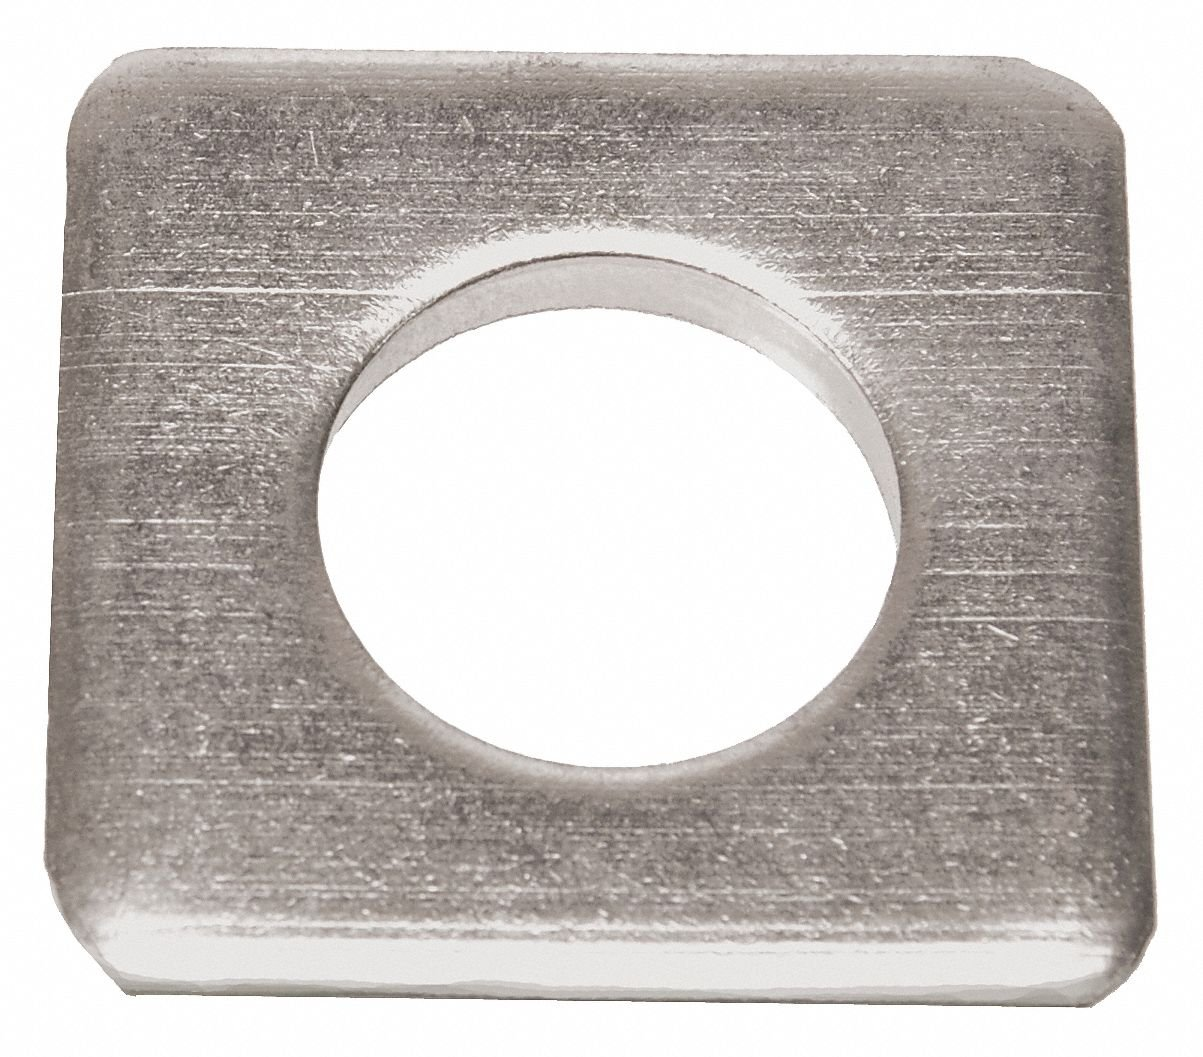 Square Washer, Steel, Fits Bolt 1-1/2'' - pack of 5 by Unknown